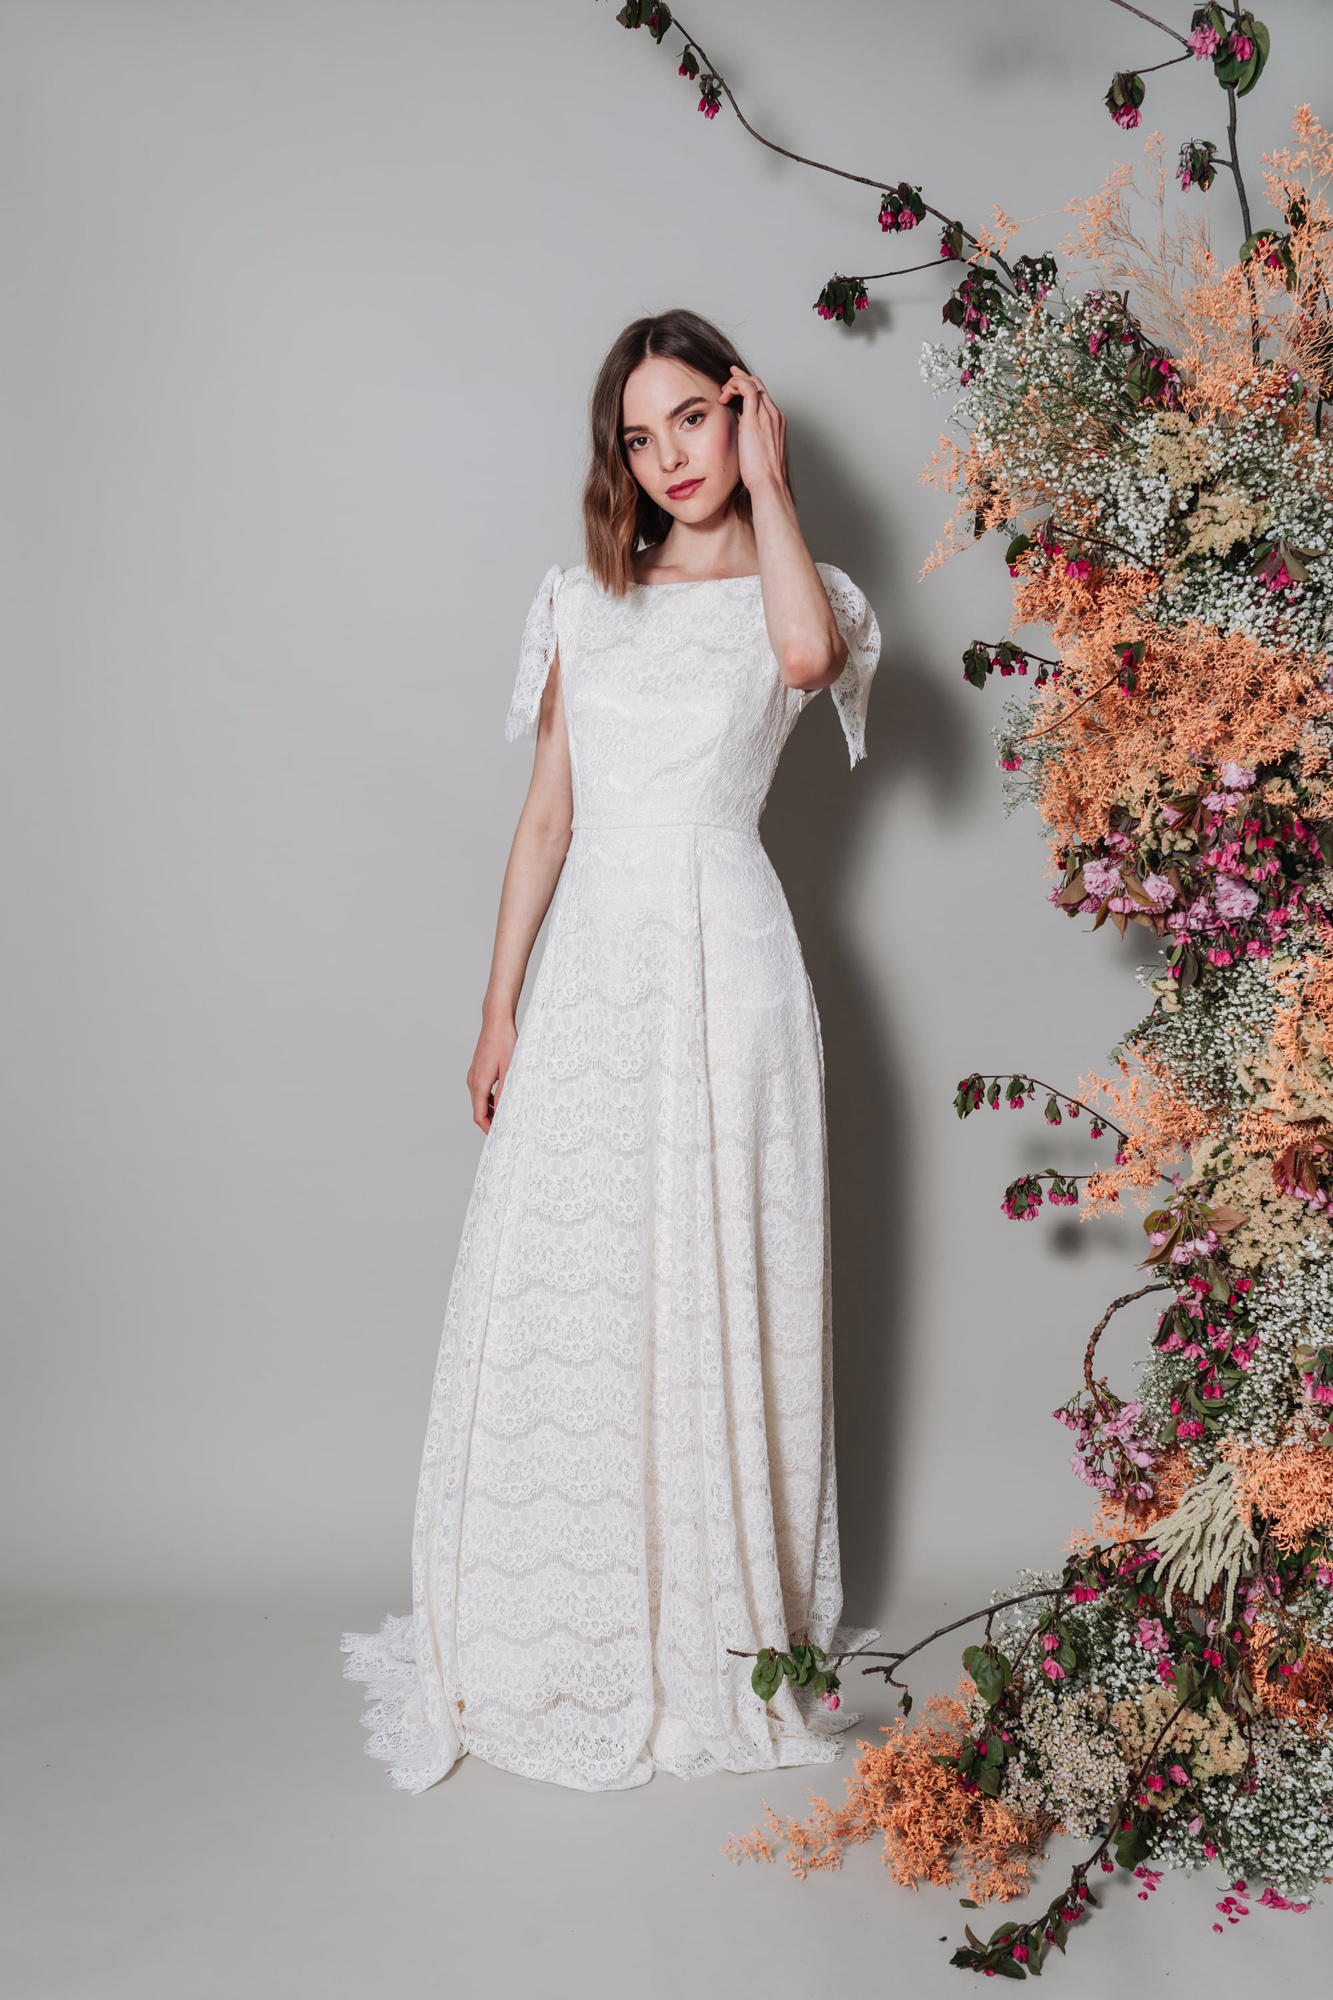 Kate-Beaumont-Sheffield-Bohemian-Dahlia-Panelled-Lace-Silk-Wedding-Gown-2.jpg